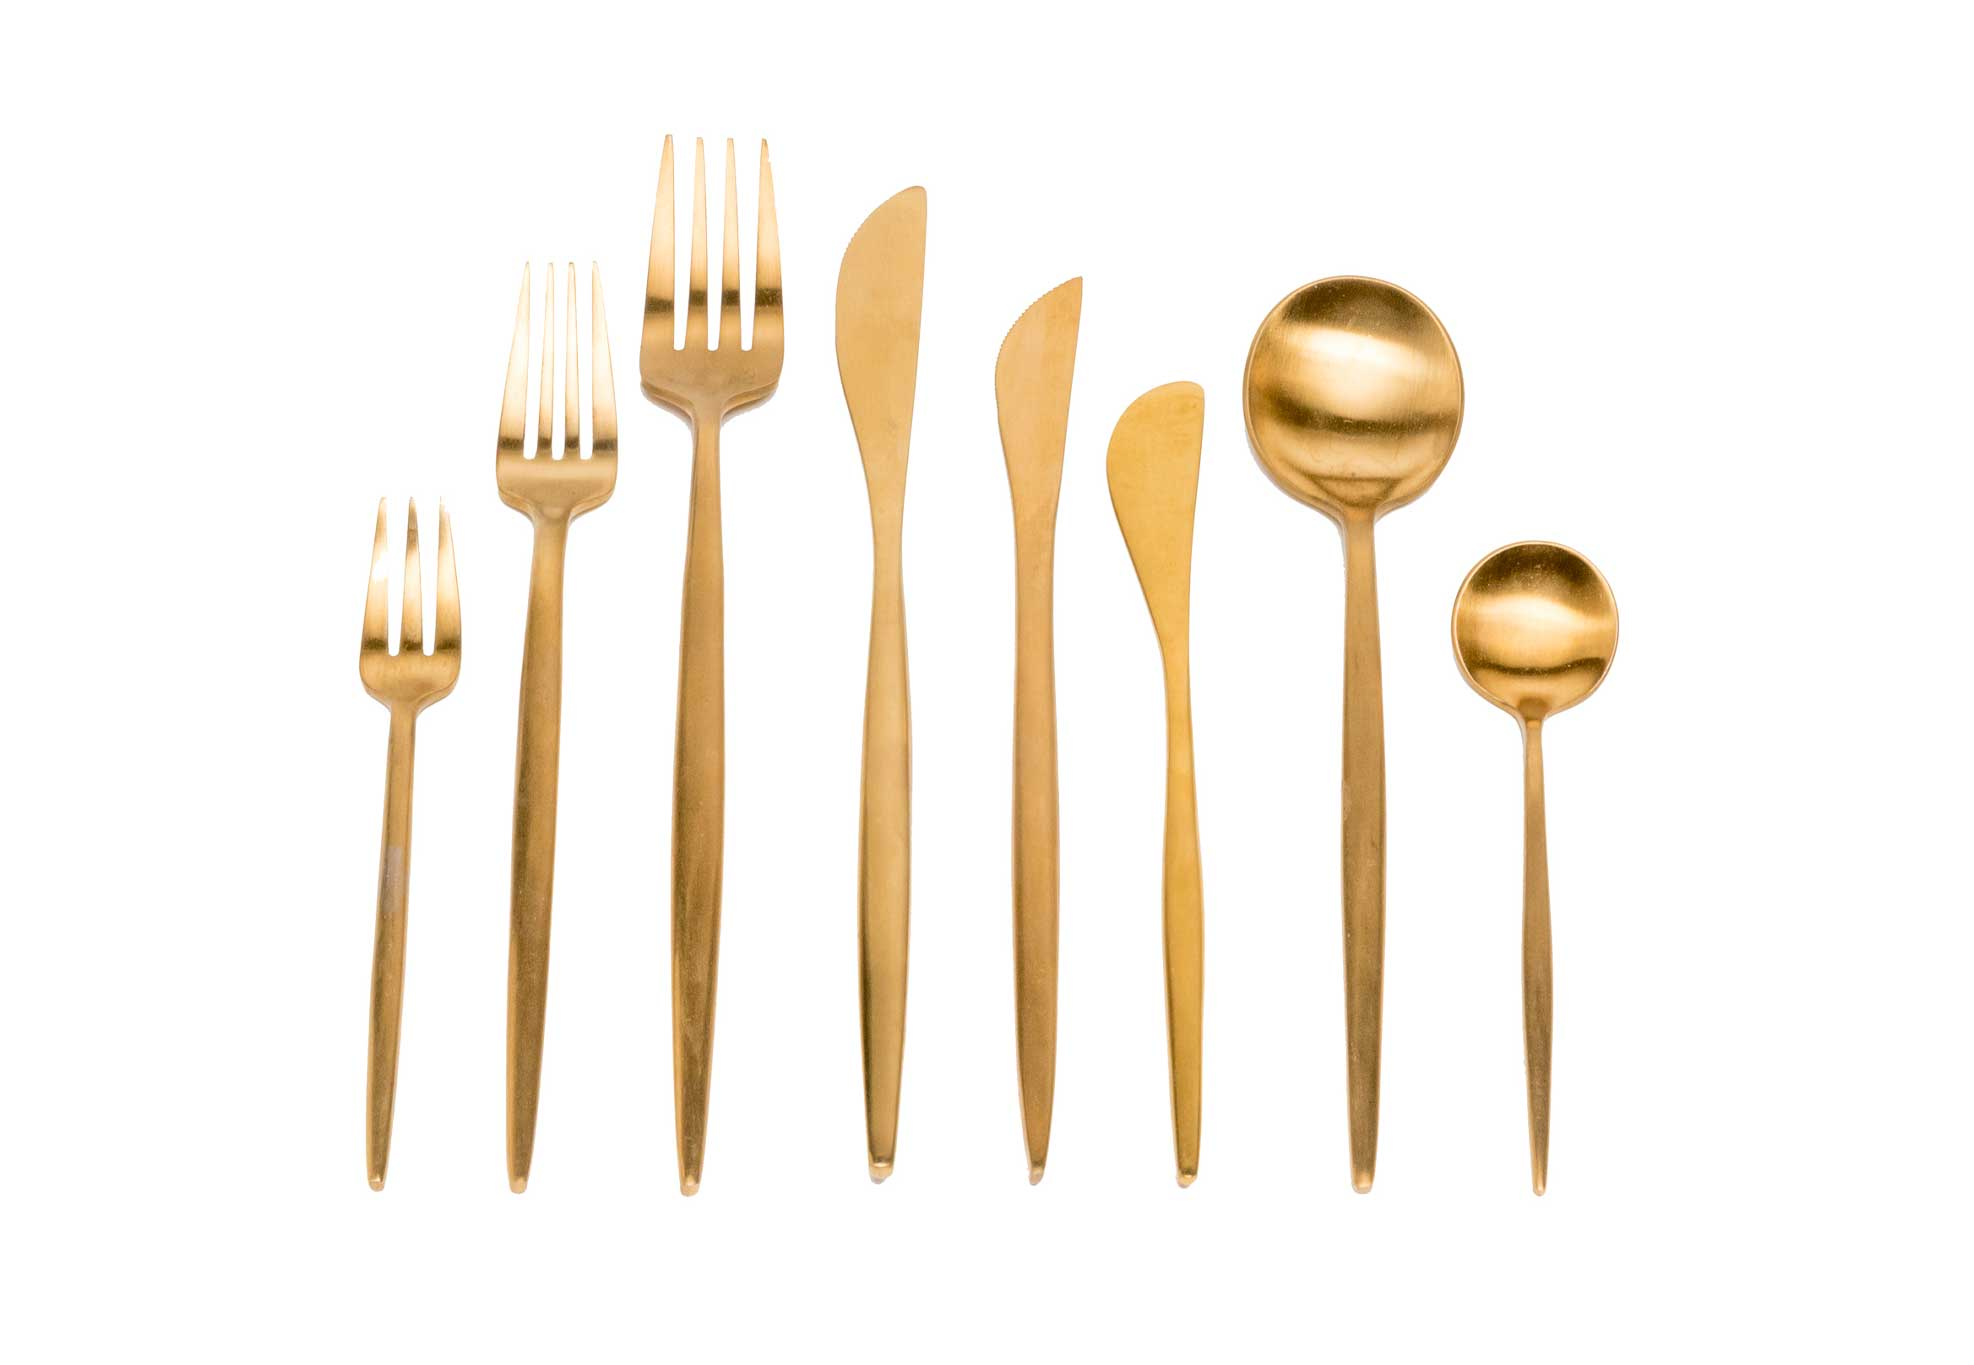 silk-estate-marquee-weddings-and-events-styling-and-hire-cutlery-gold